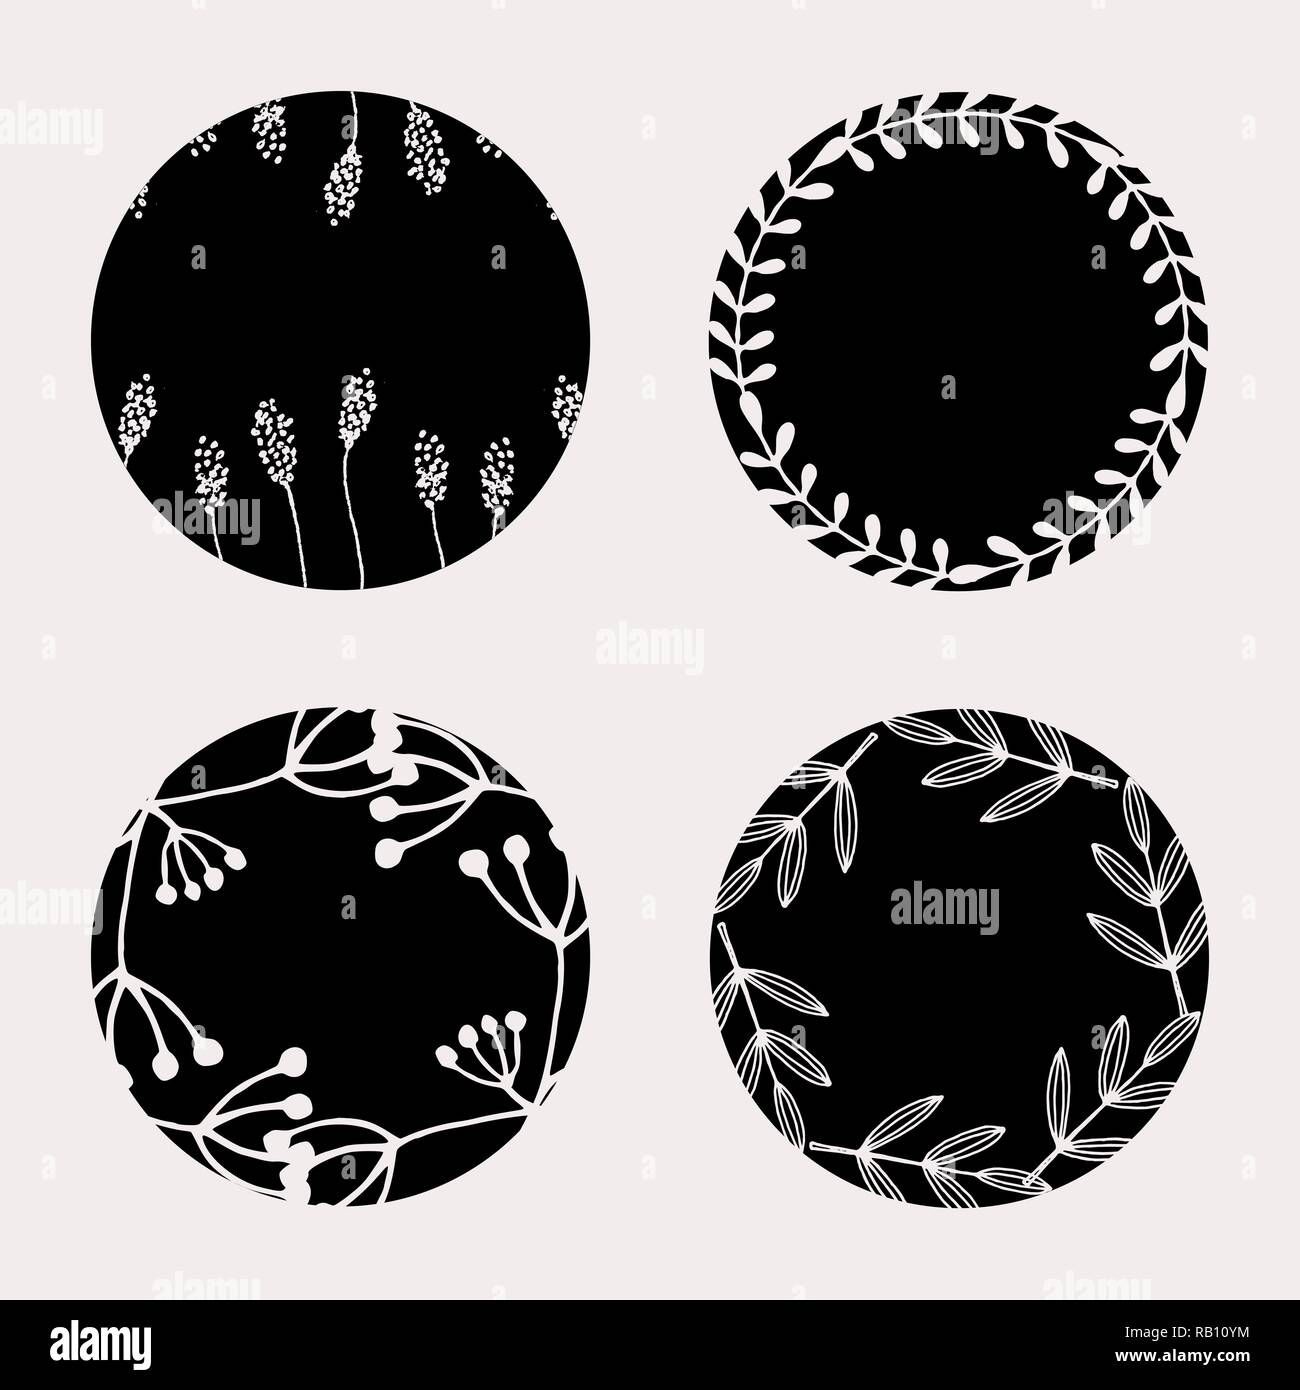 A Set Of Four Round Frames With Floral Elements In Black And Pastel